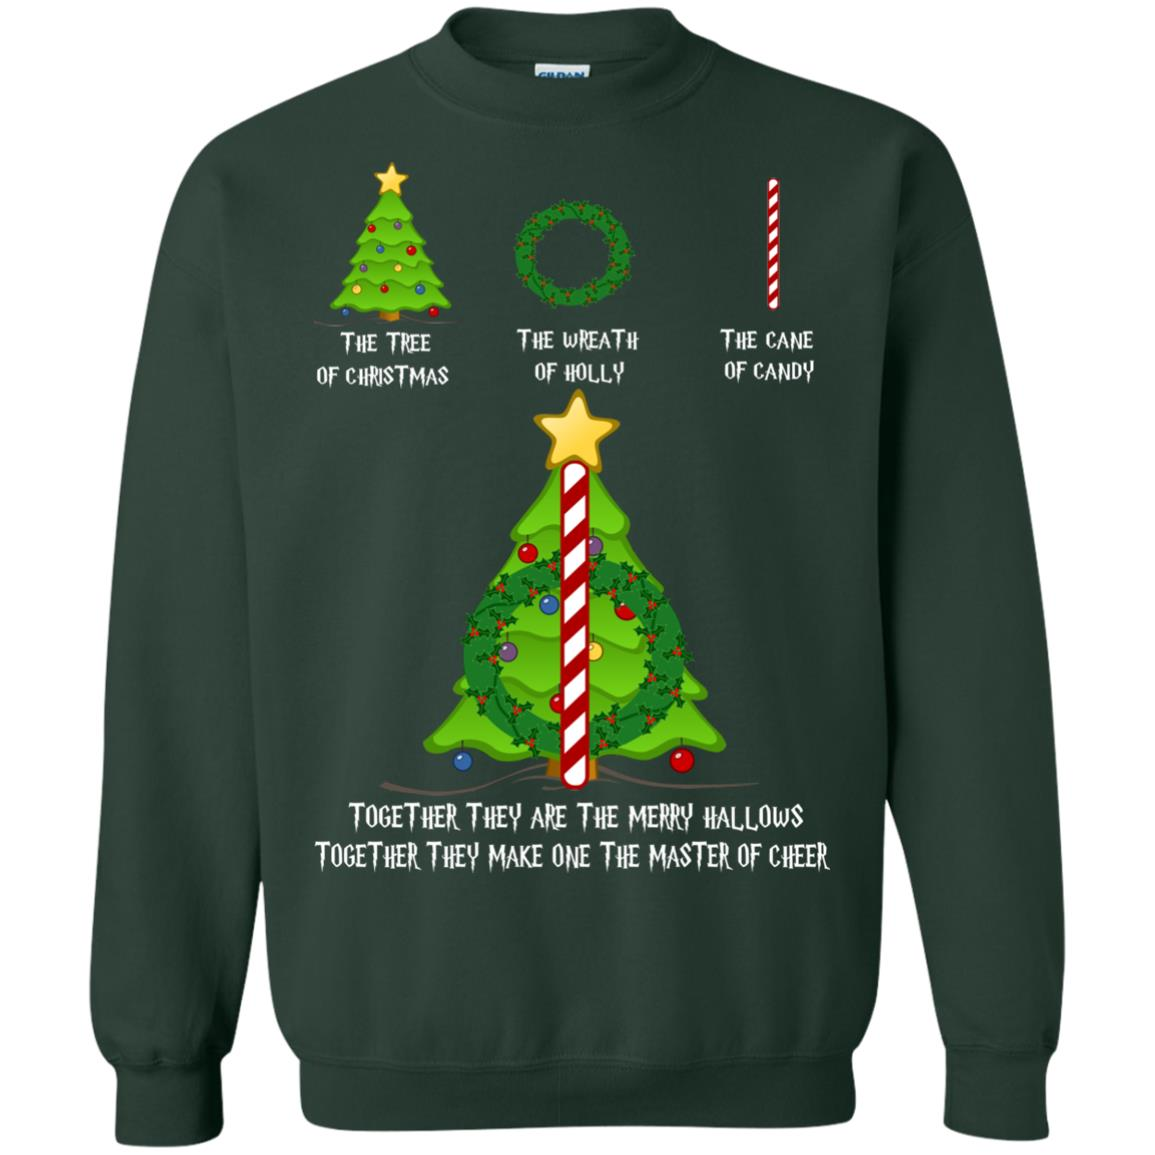 image 370px Harry Potter: The Tree Of Christmas The Wreath of Holly The Cane Of Candy Sweater